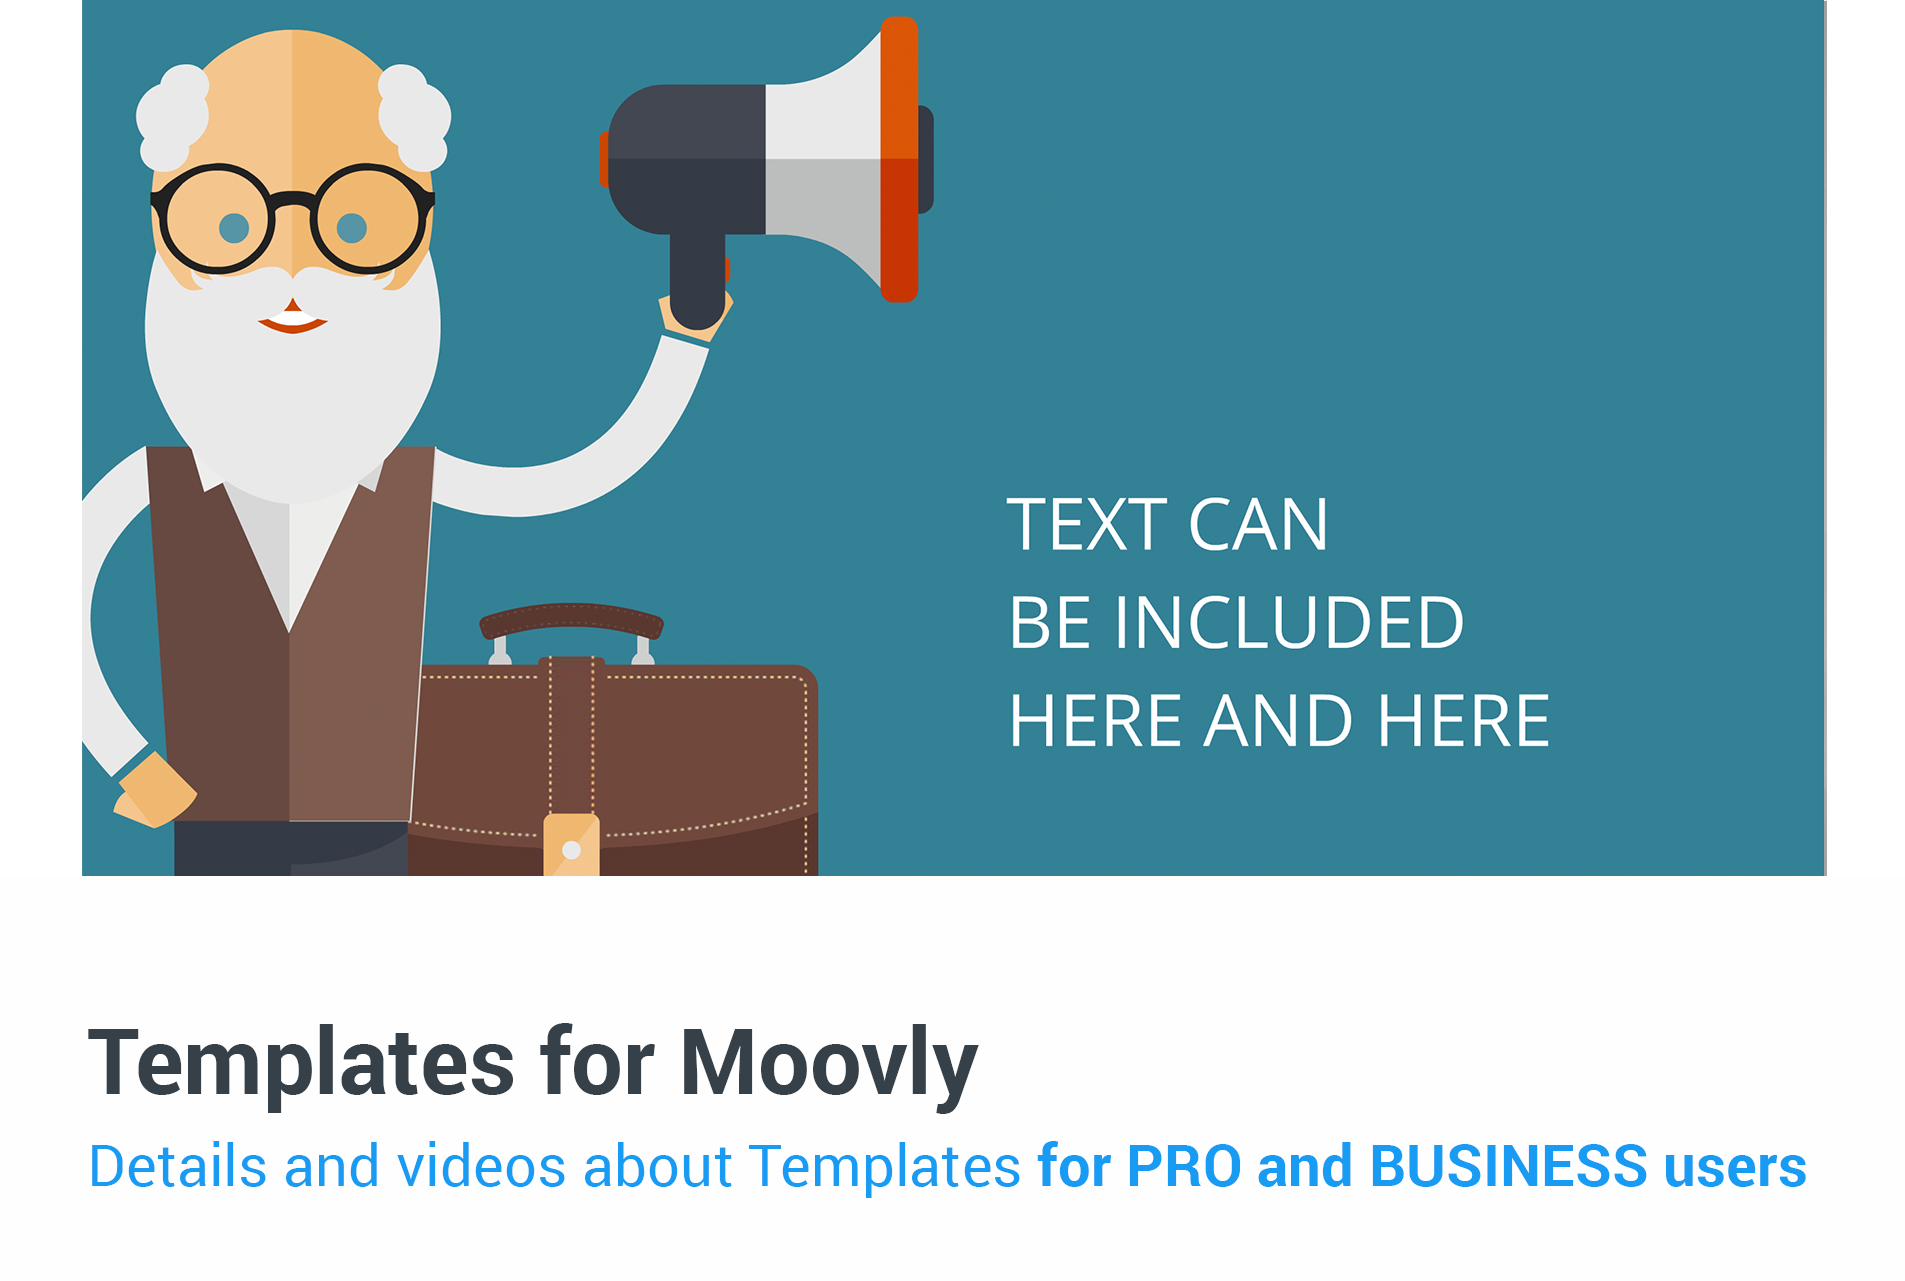 New Moovly Templates for Pro and Business users, Boost and Clean ...